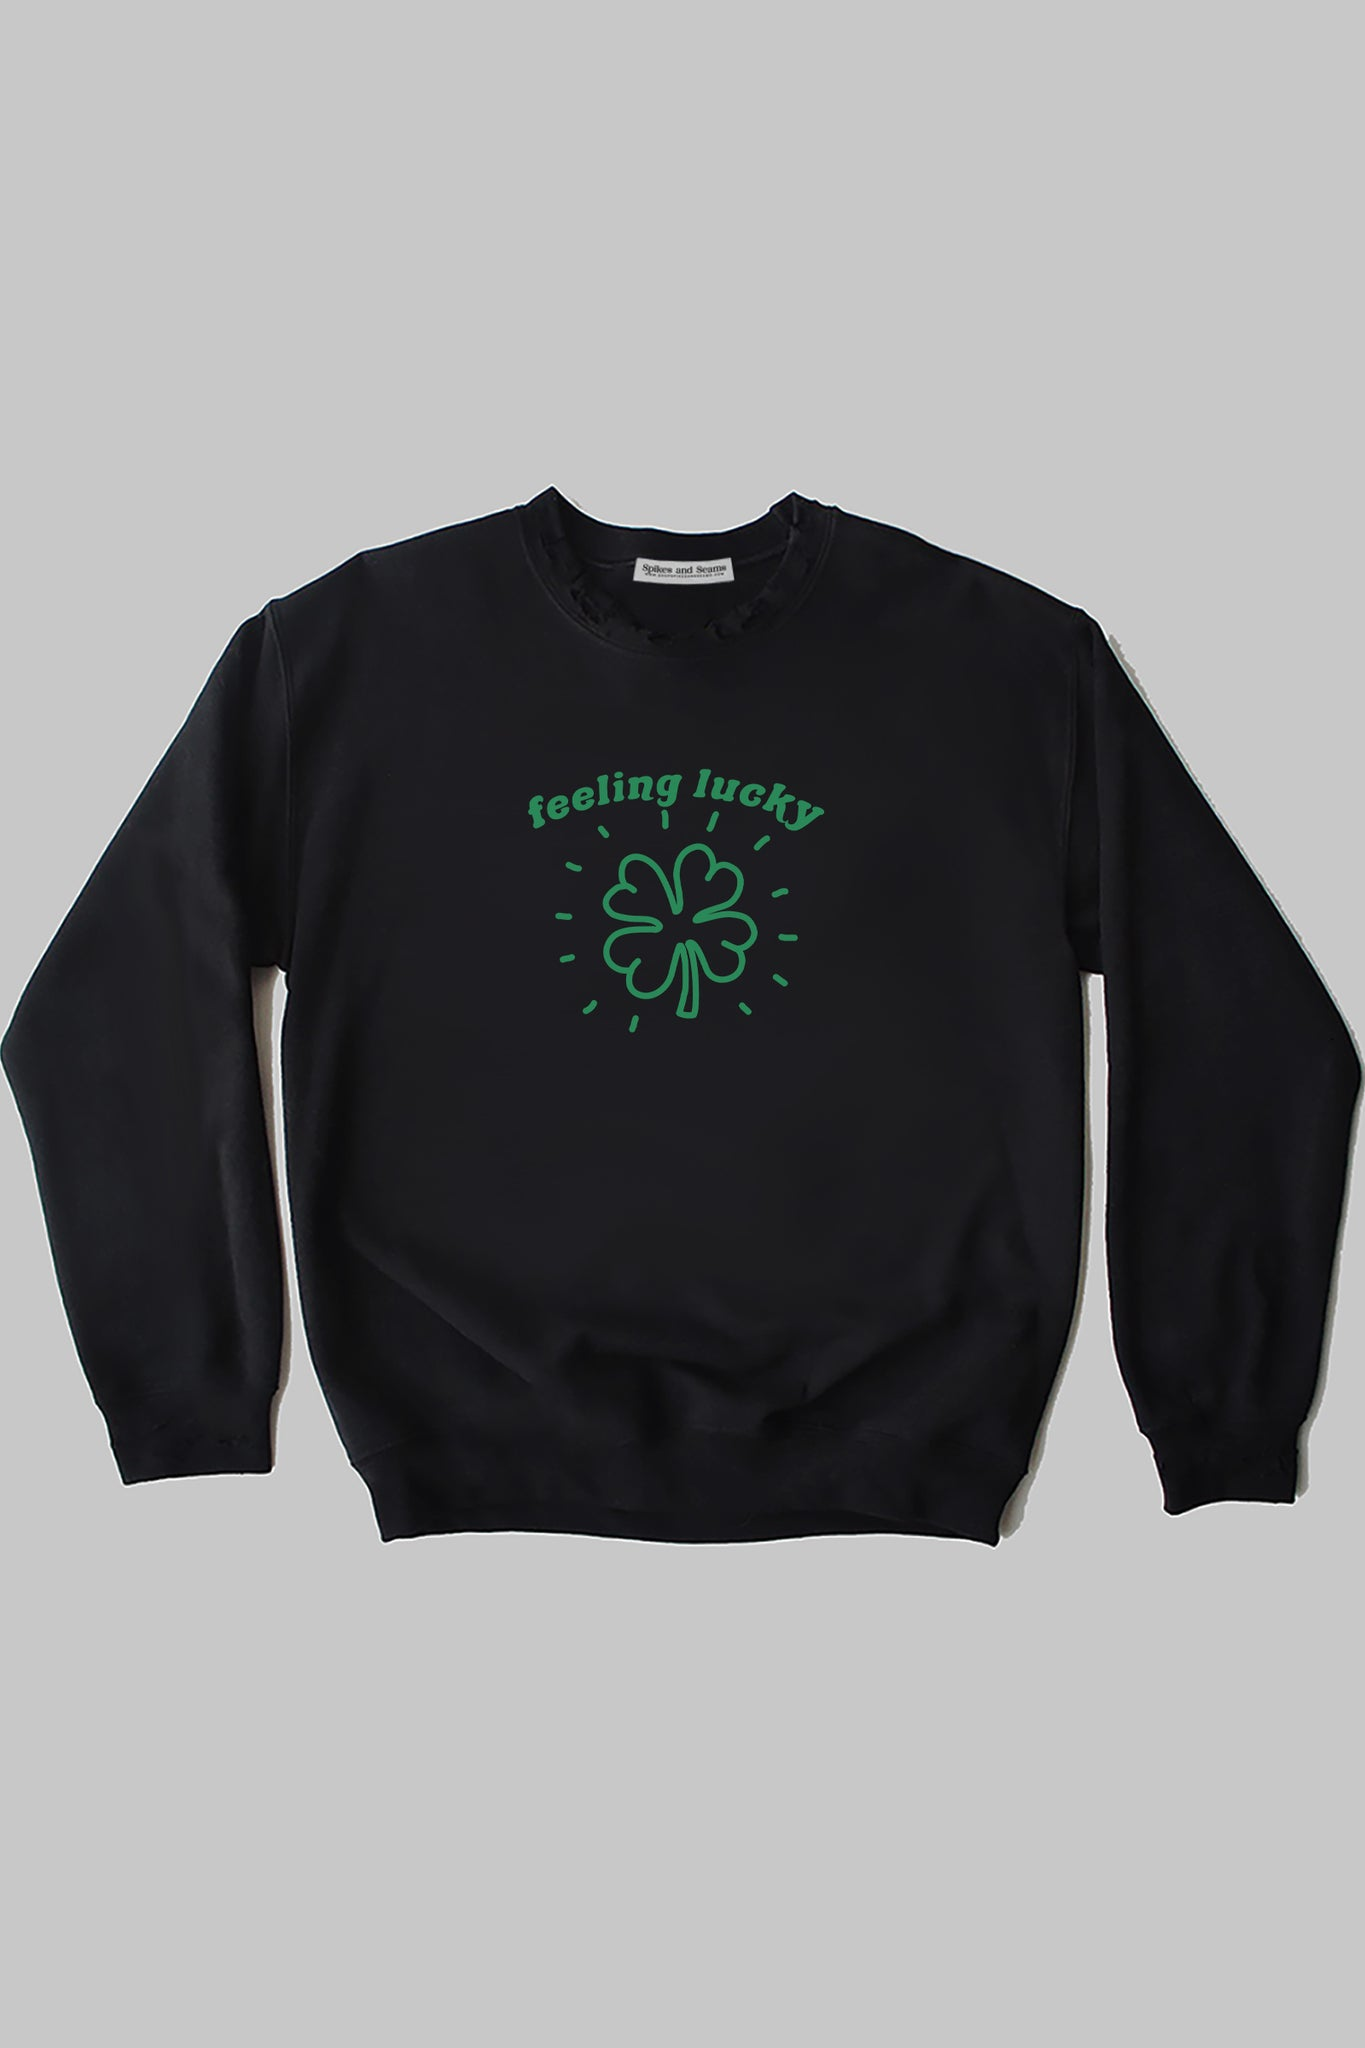 Feeling Lucky sweatshirt - black.